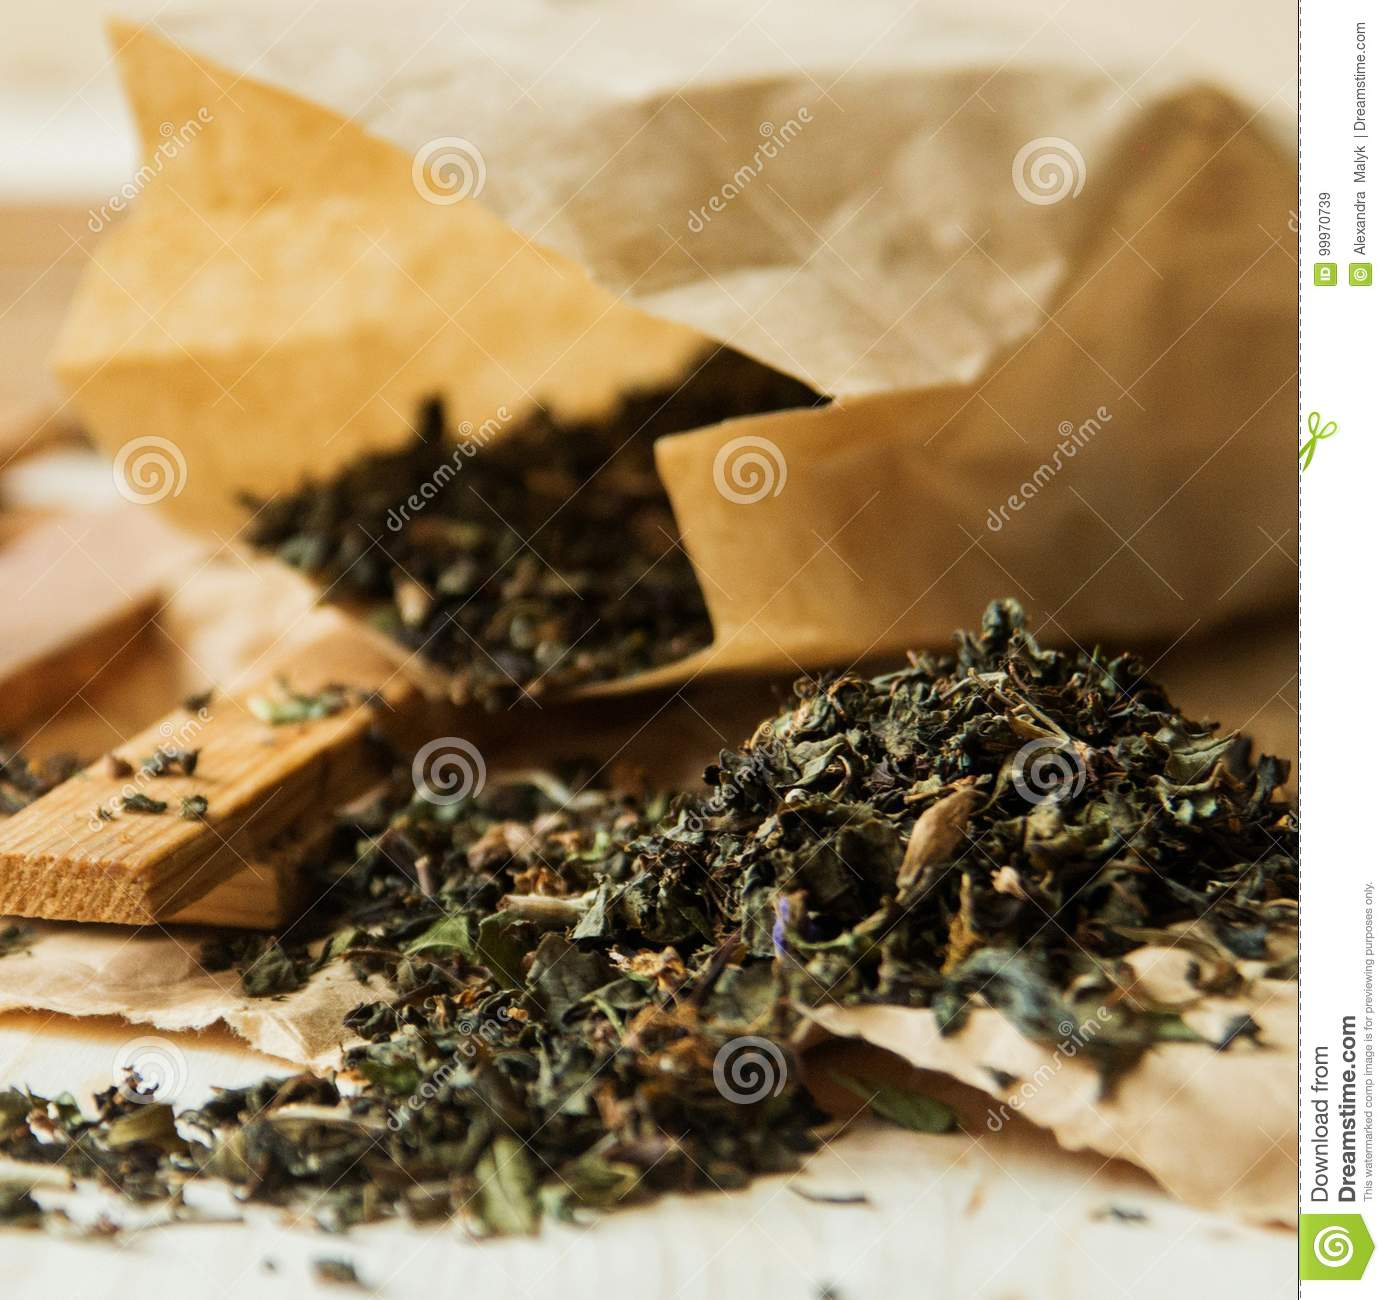 Dried Hibiscus Flower Tea In A Paper Bag Isolated On White Backg